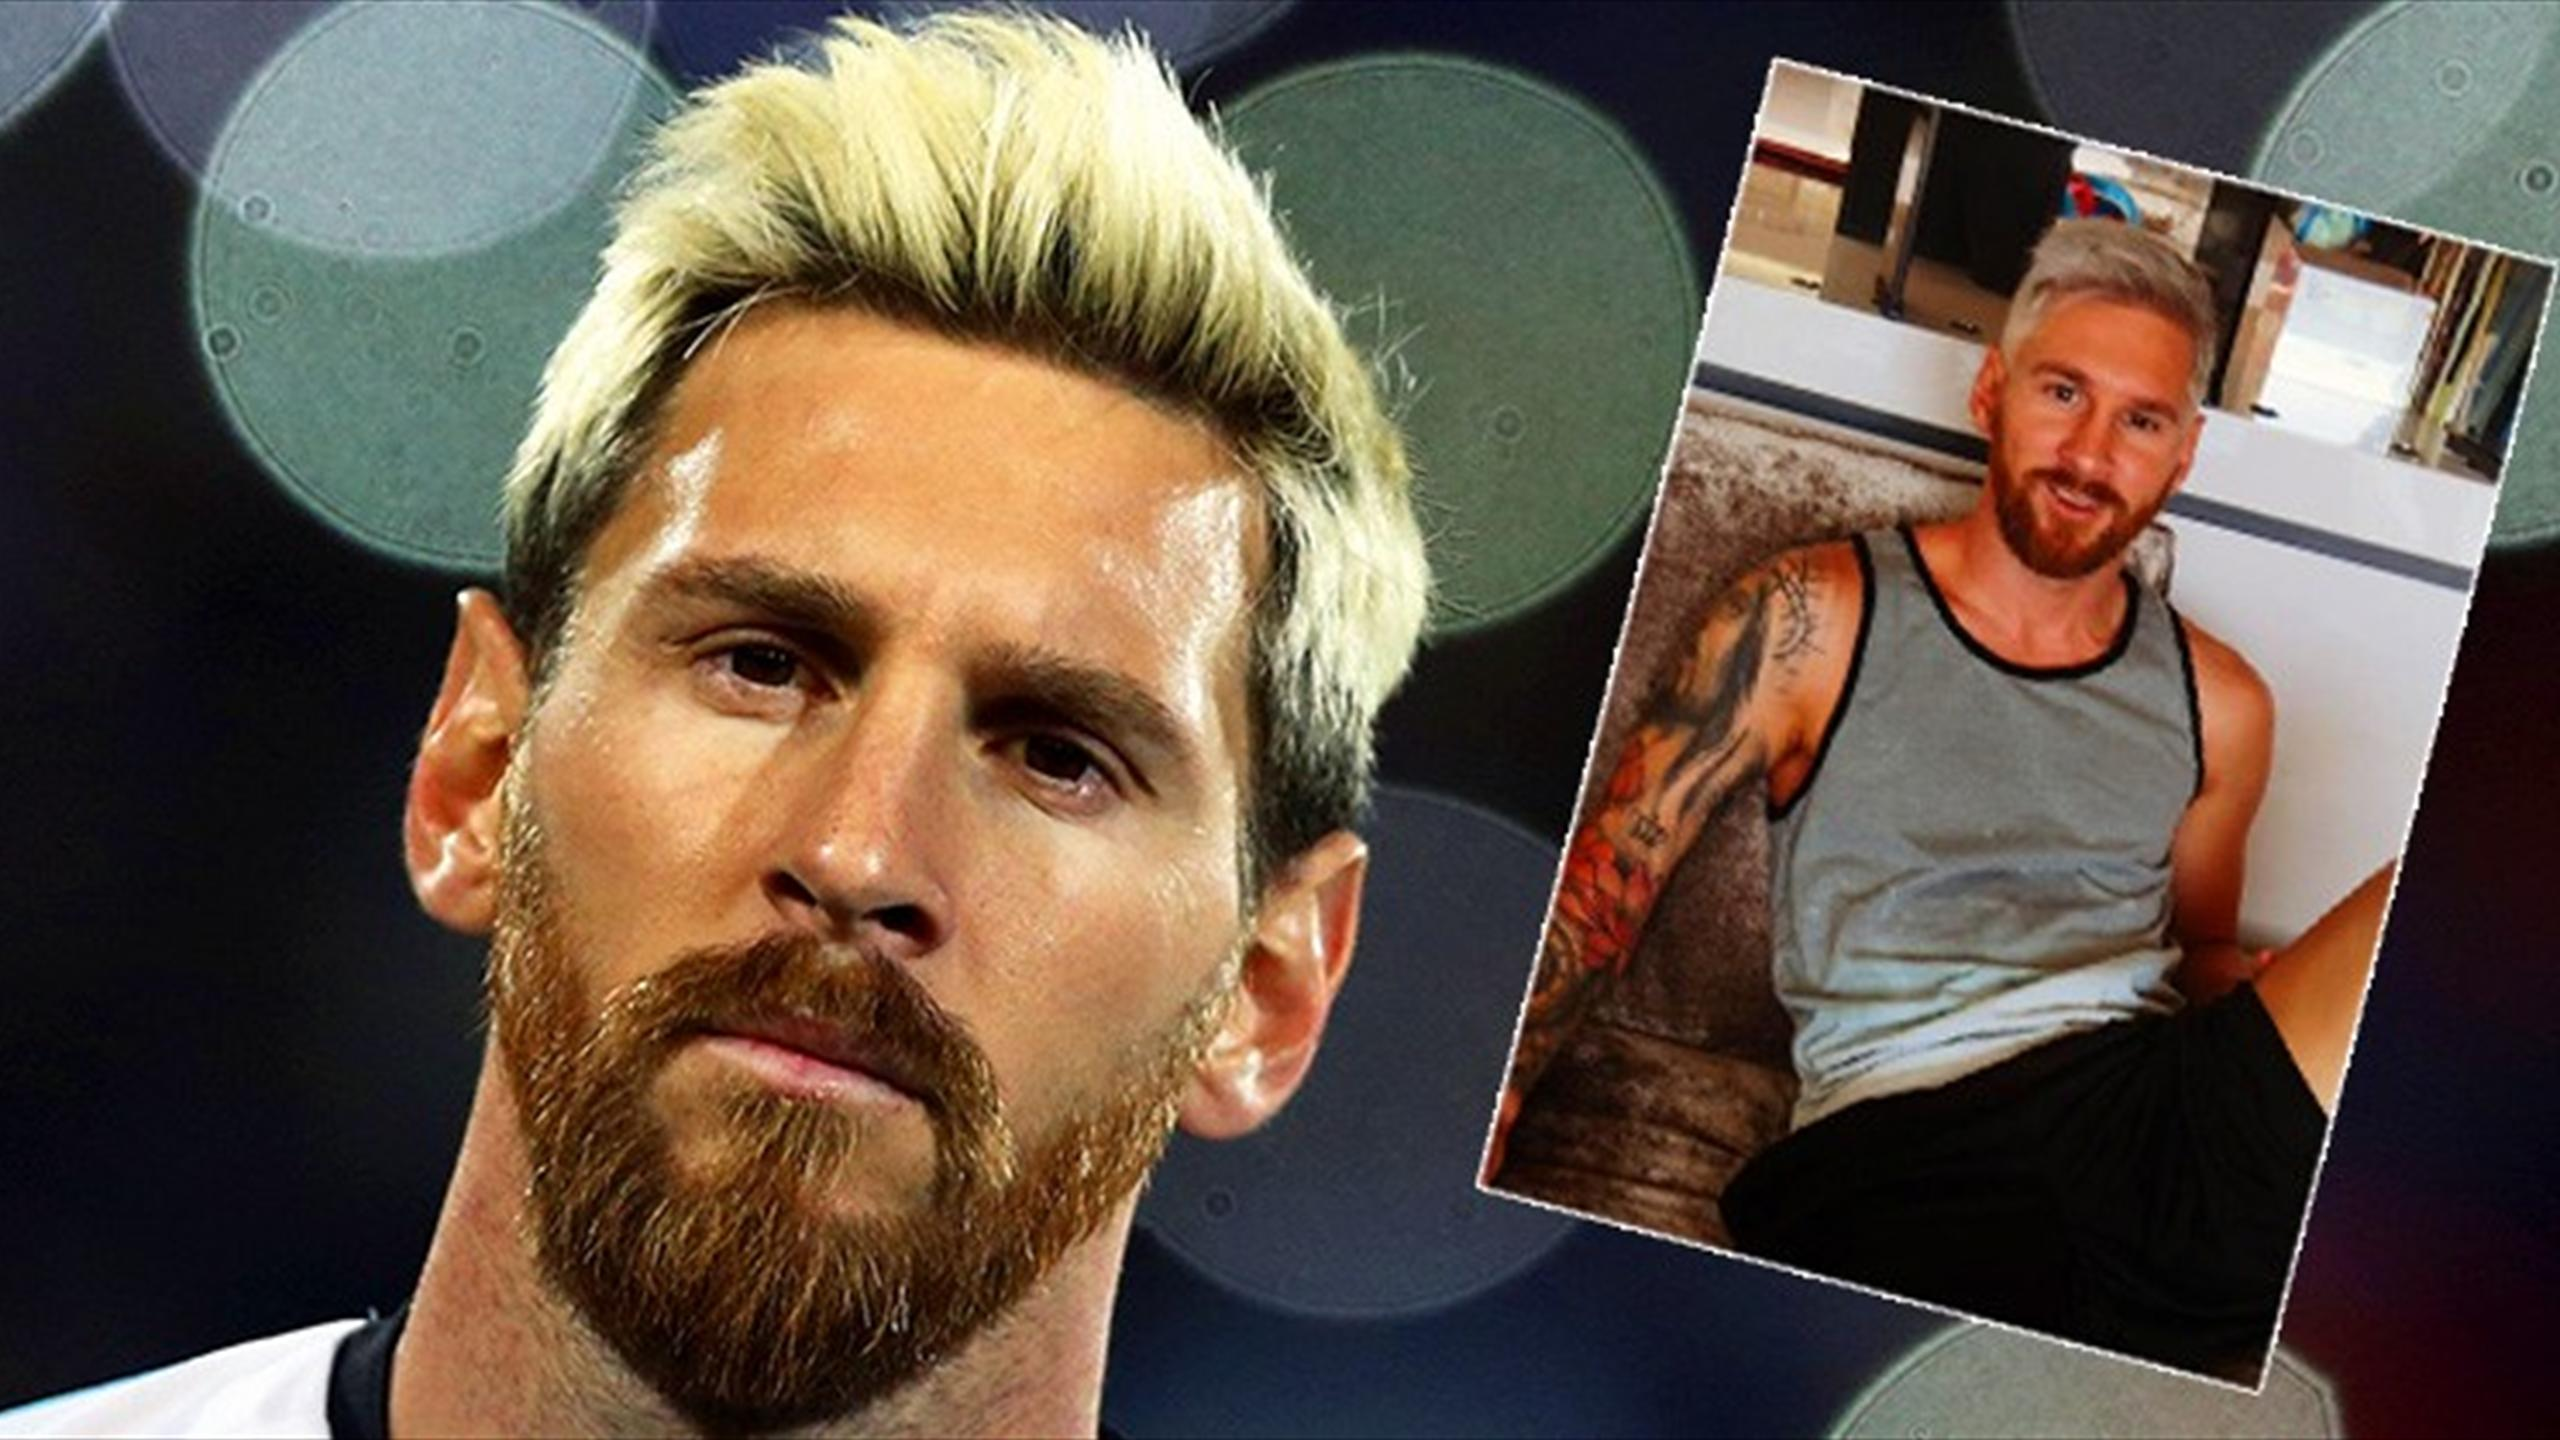 Lionel Messi and his bleached blond hair